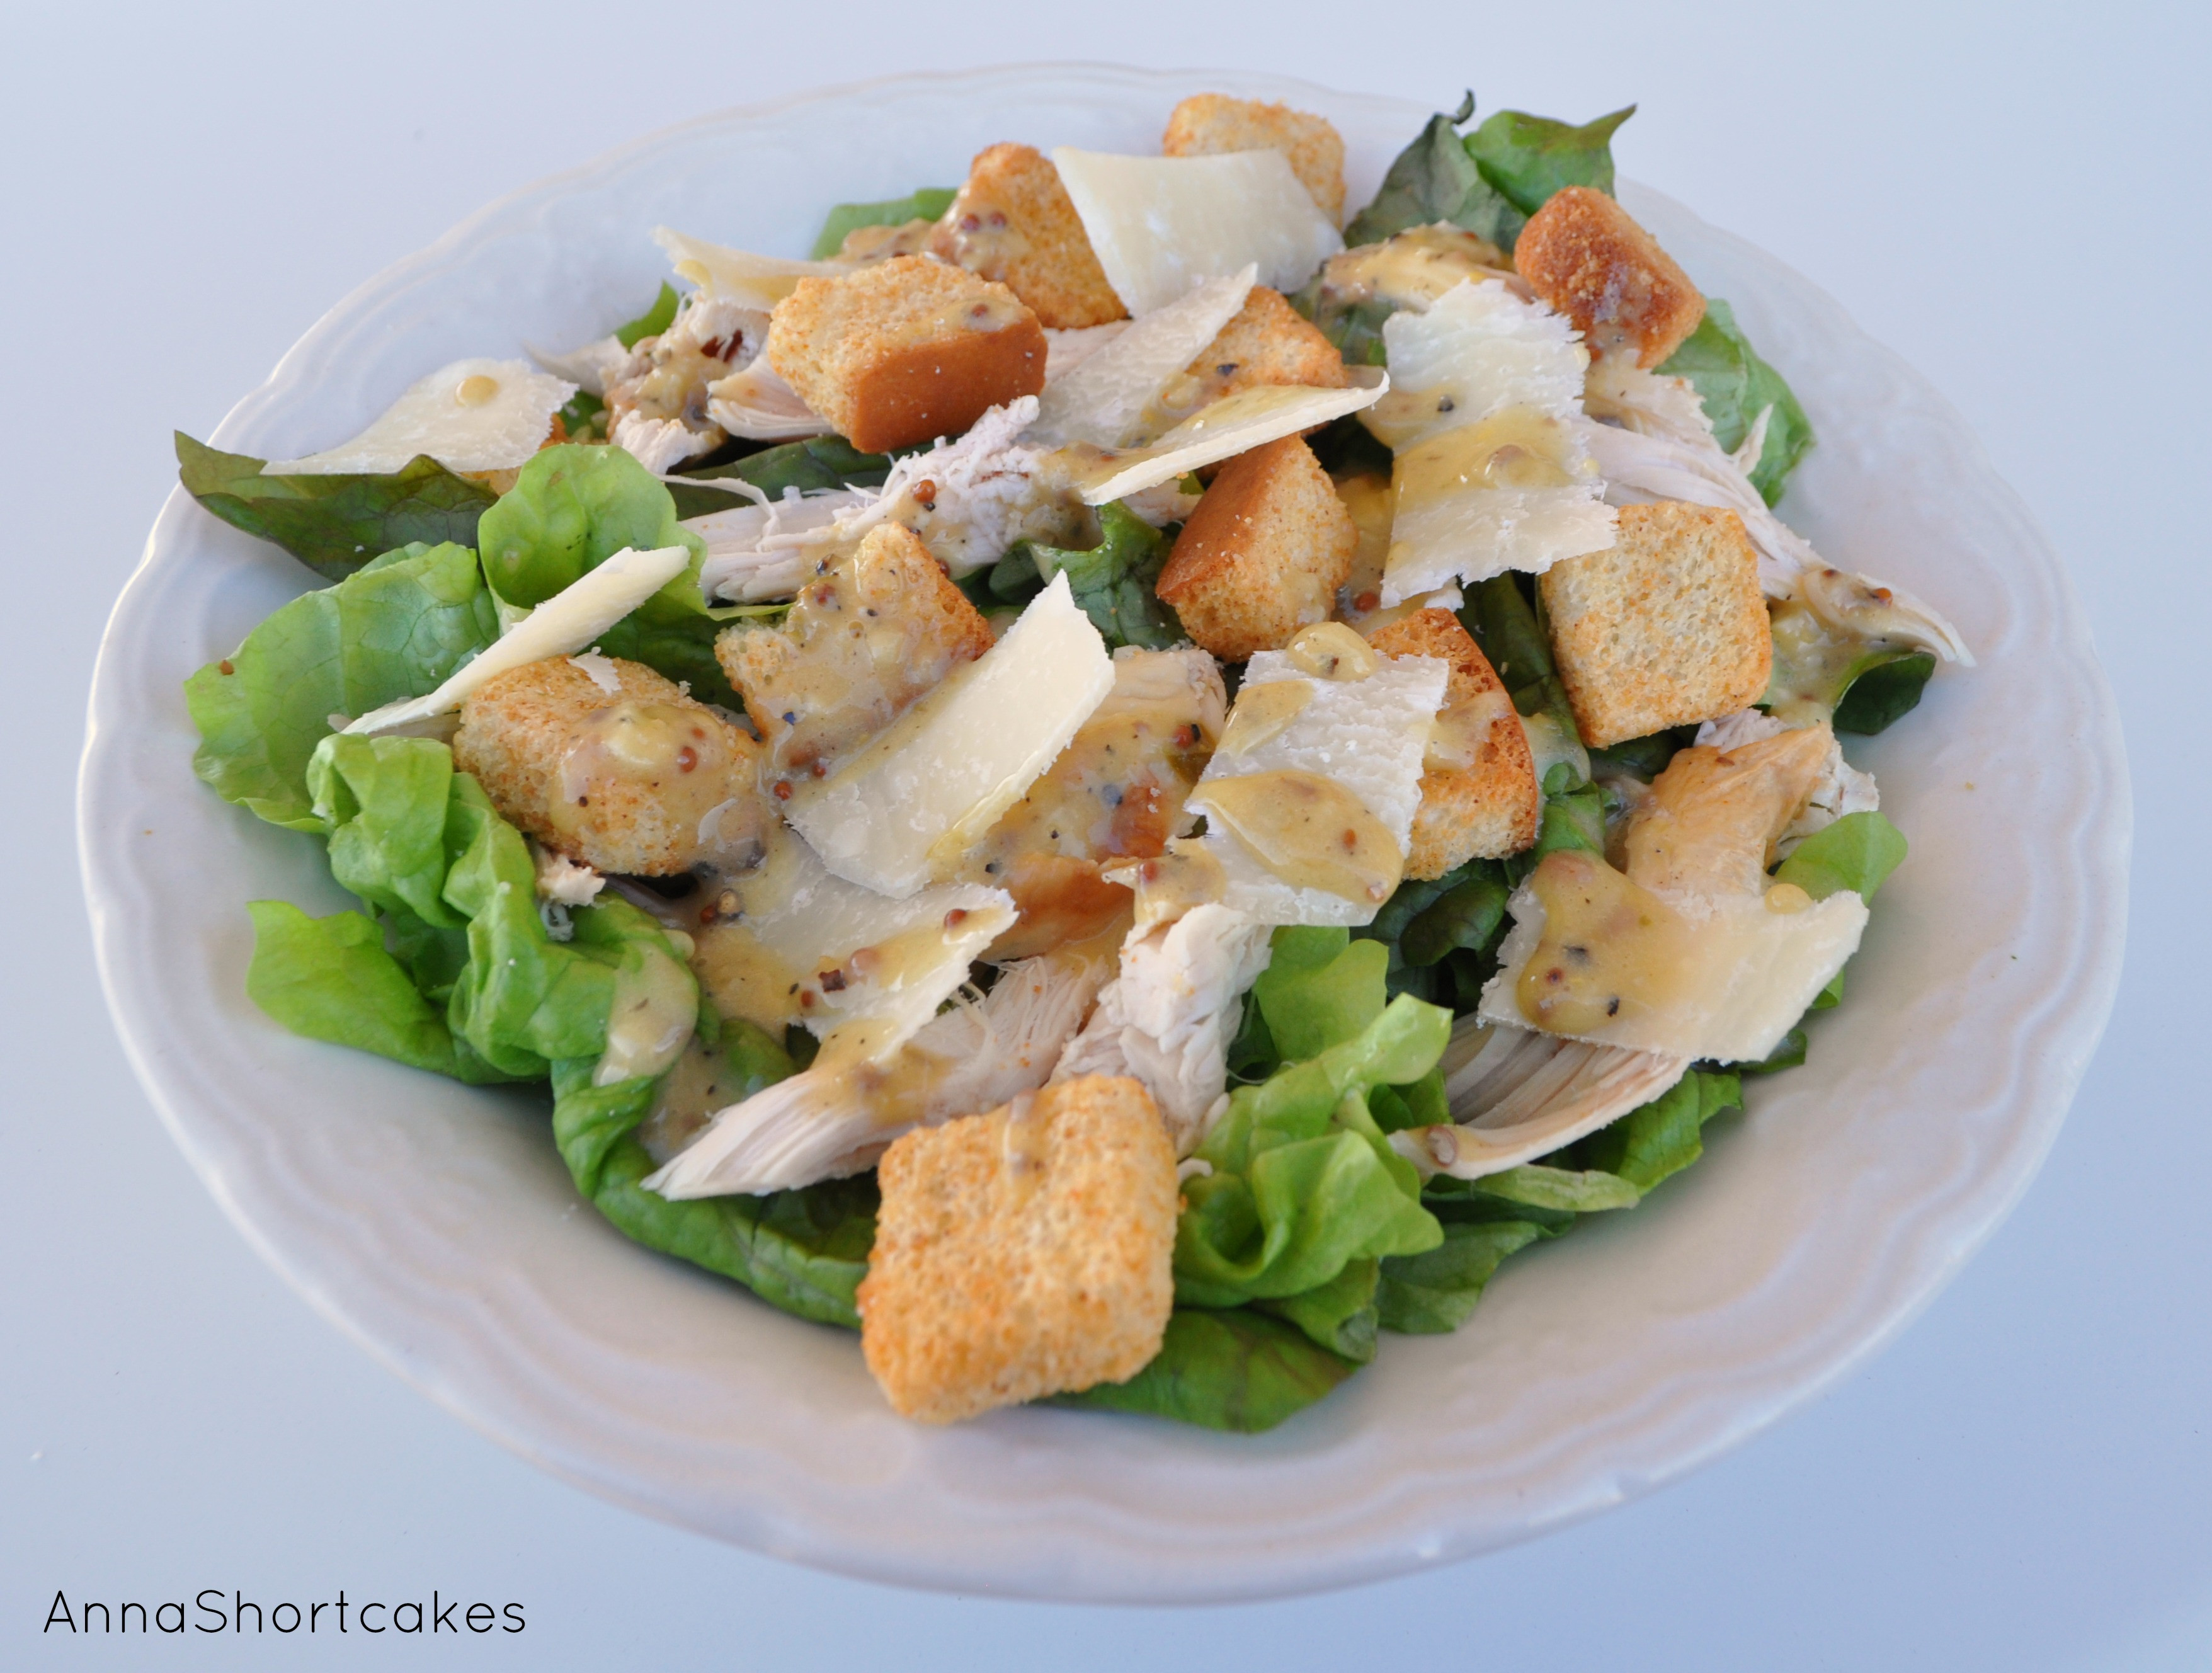 Grilled Chicken Salad Calories  grilled chicken caesar salad no croutons calories